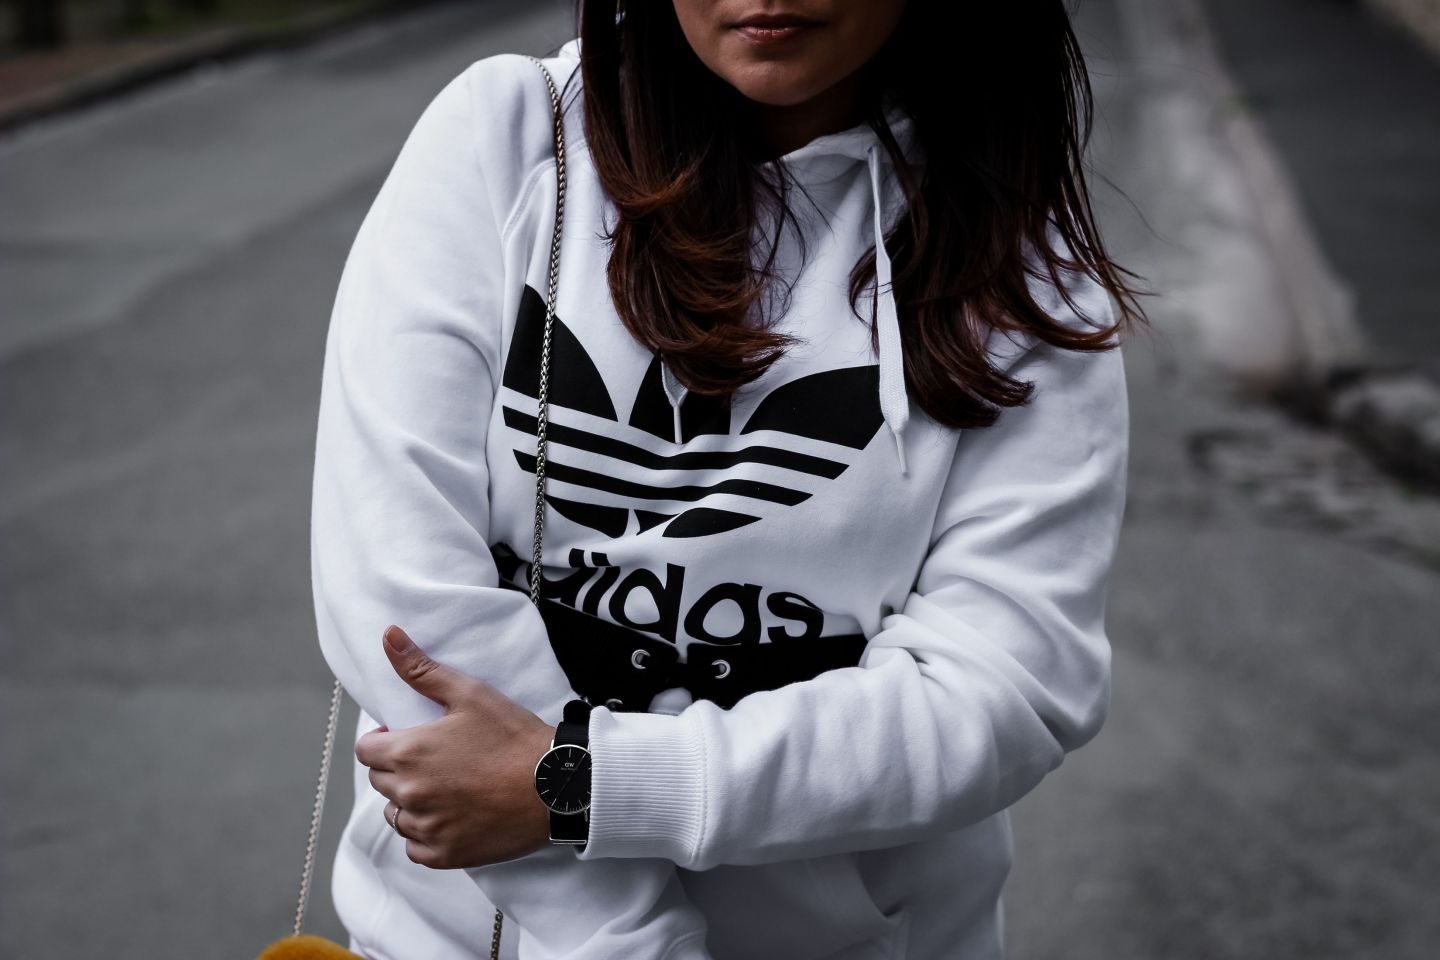 corset, zara, adidas, sweat blanc adidas, sweat homme, sweat adidas, panatalon simili cuir, sac jaune, shein, elyse stella, inspiration stella, blog mode, the green ananas, blogueuse mode, corset